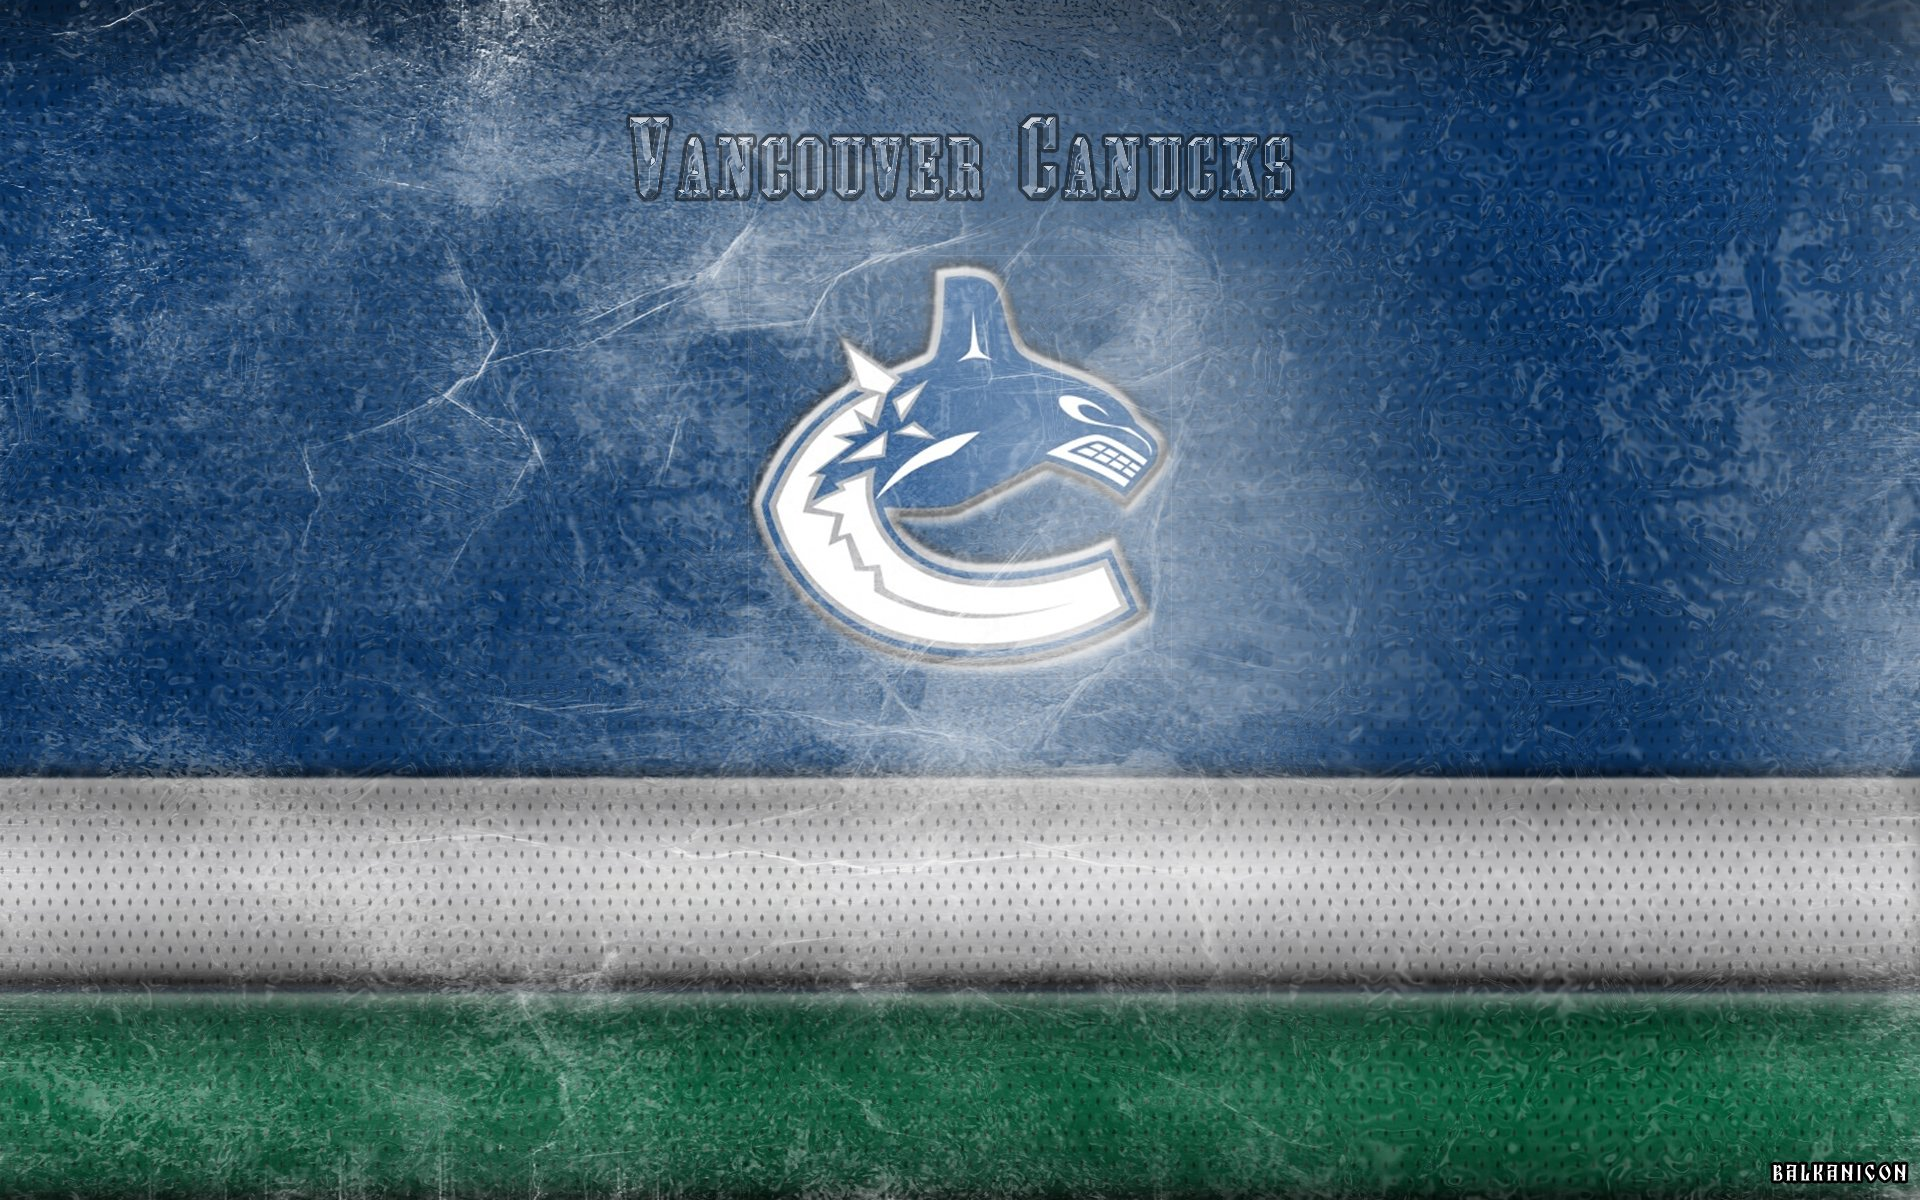 vancouver canucks wallpaper by balkanicon fan art wallpaper other 2014 1920x1200